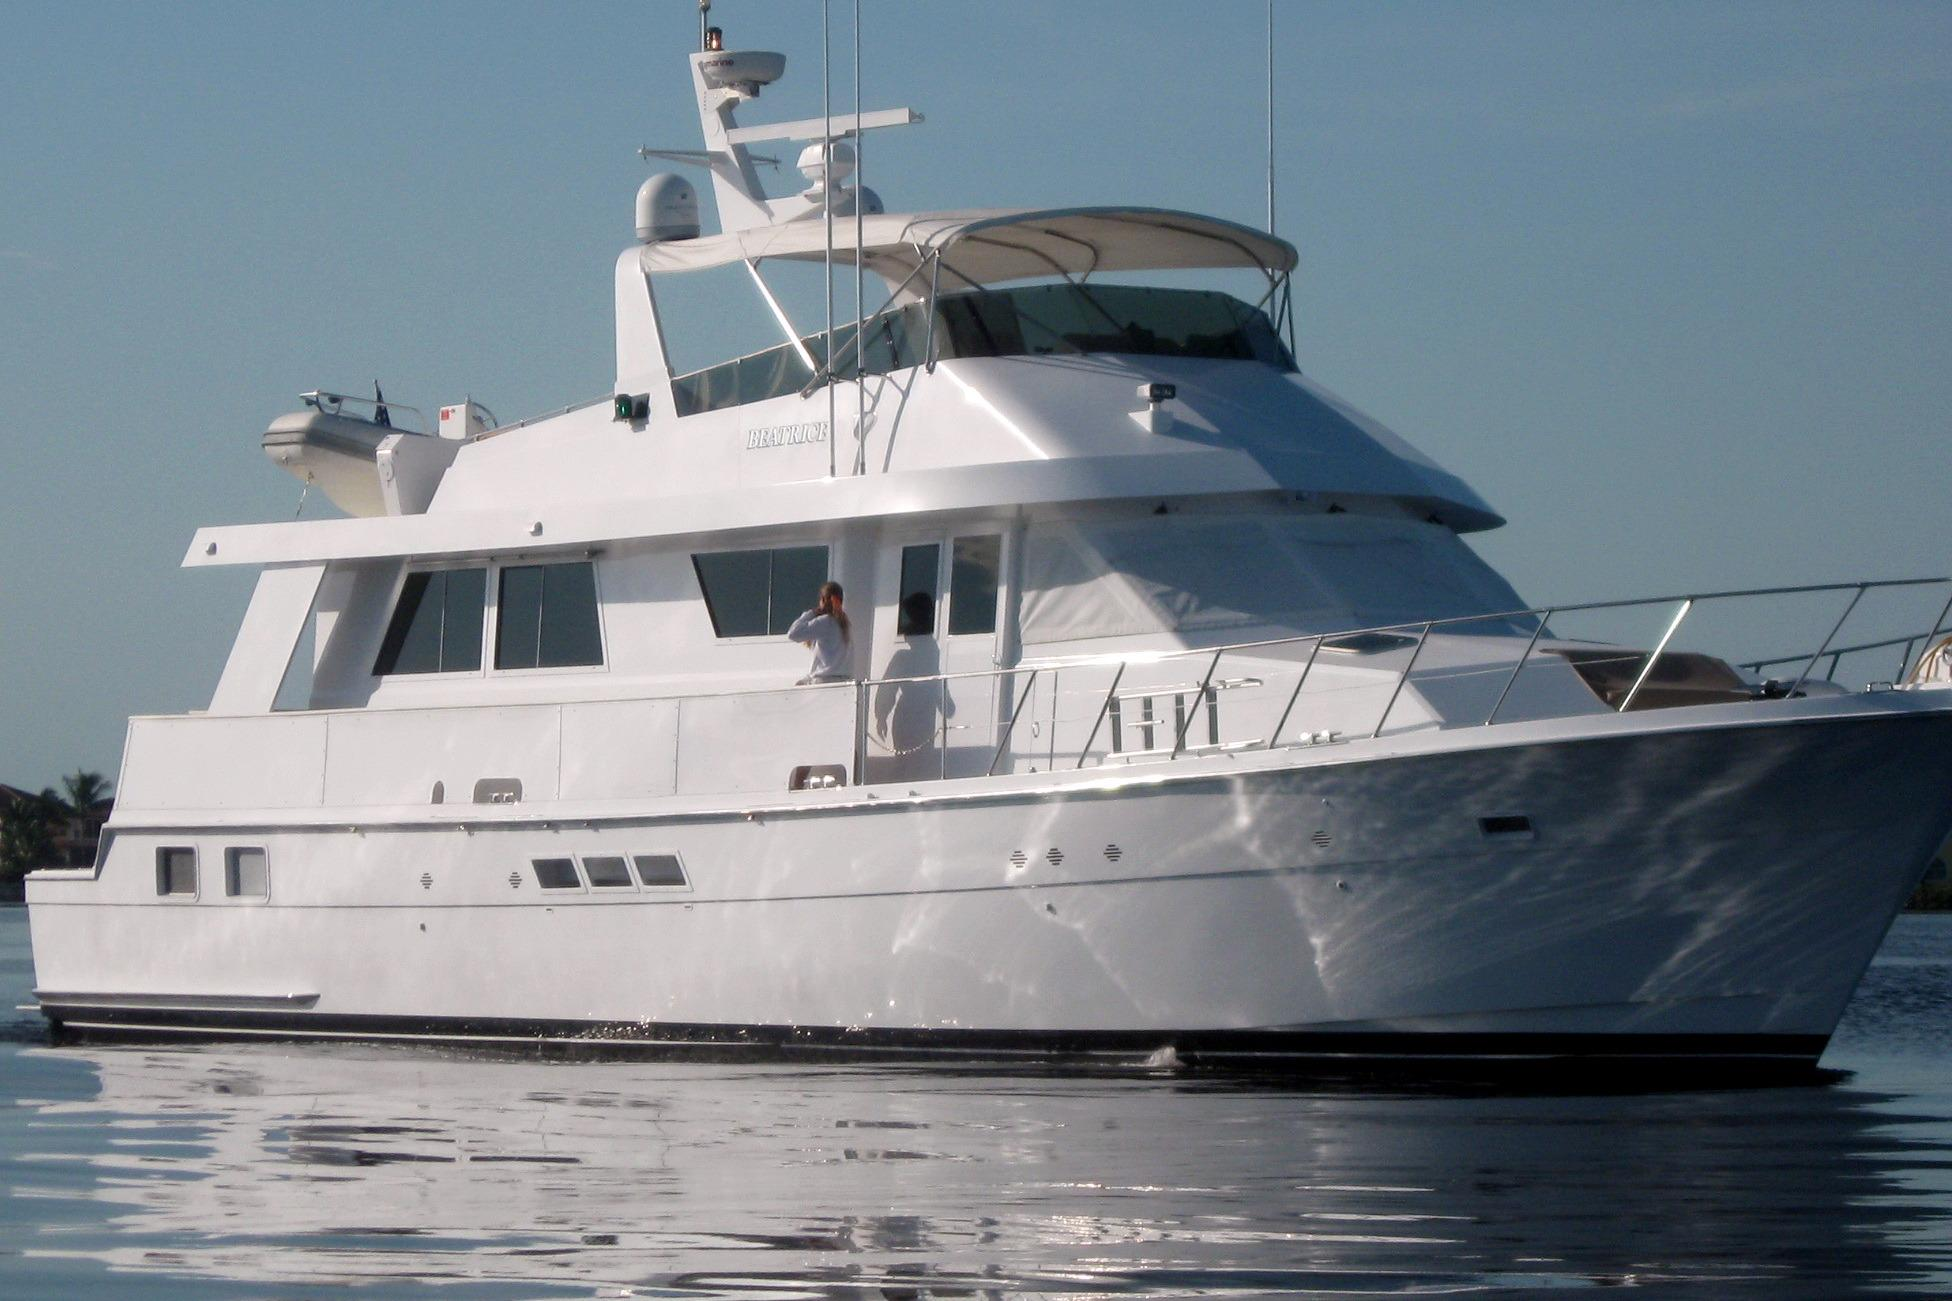 70 hatteras 1991 beatrice for sale in fort lauderdale for Hatteras motor yacht for sale